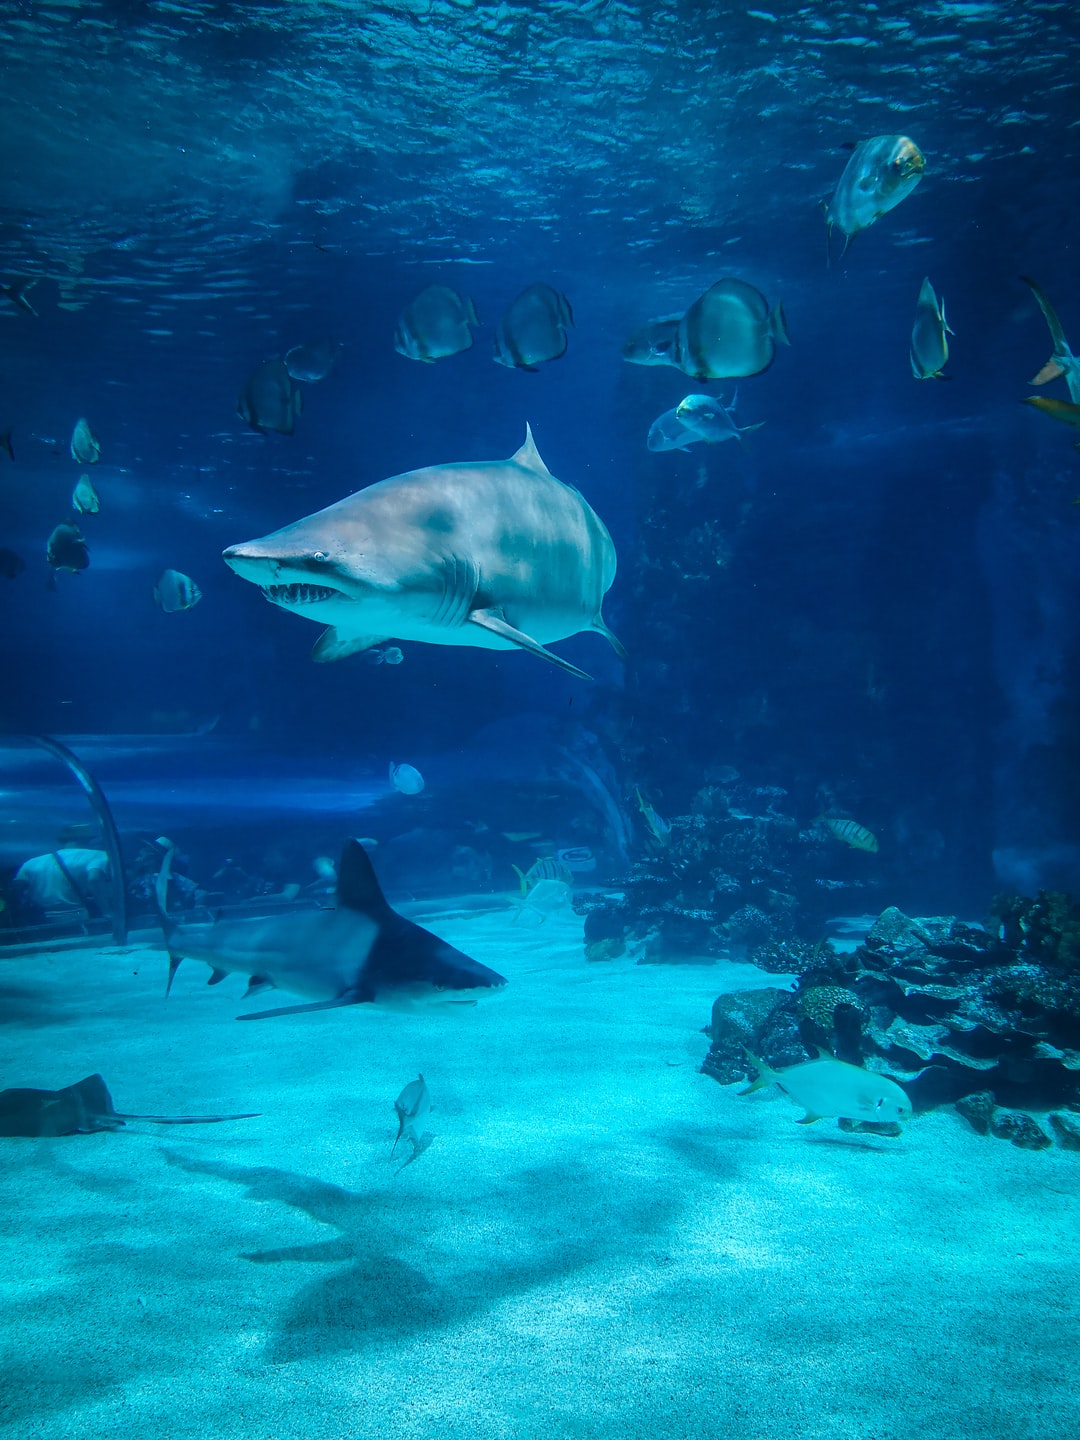 Small city aquarium in Budapest, Hungary. Just standing there and watch sharks. Unbelievable experience.